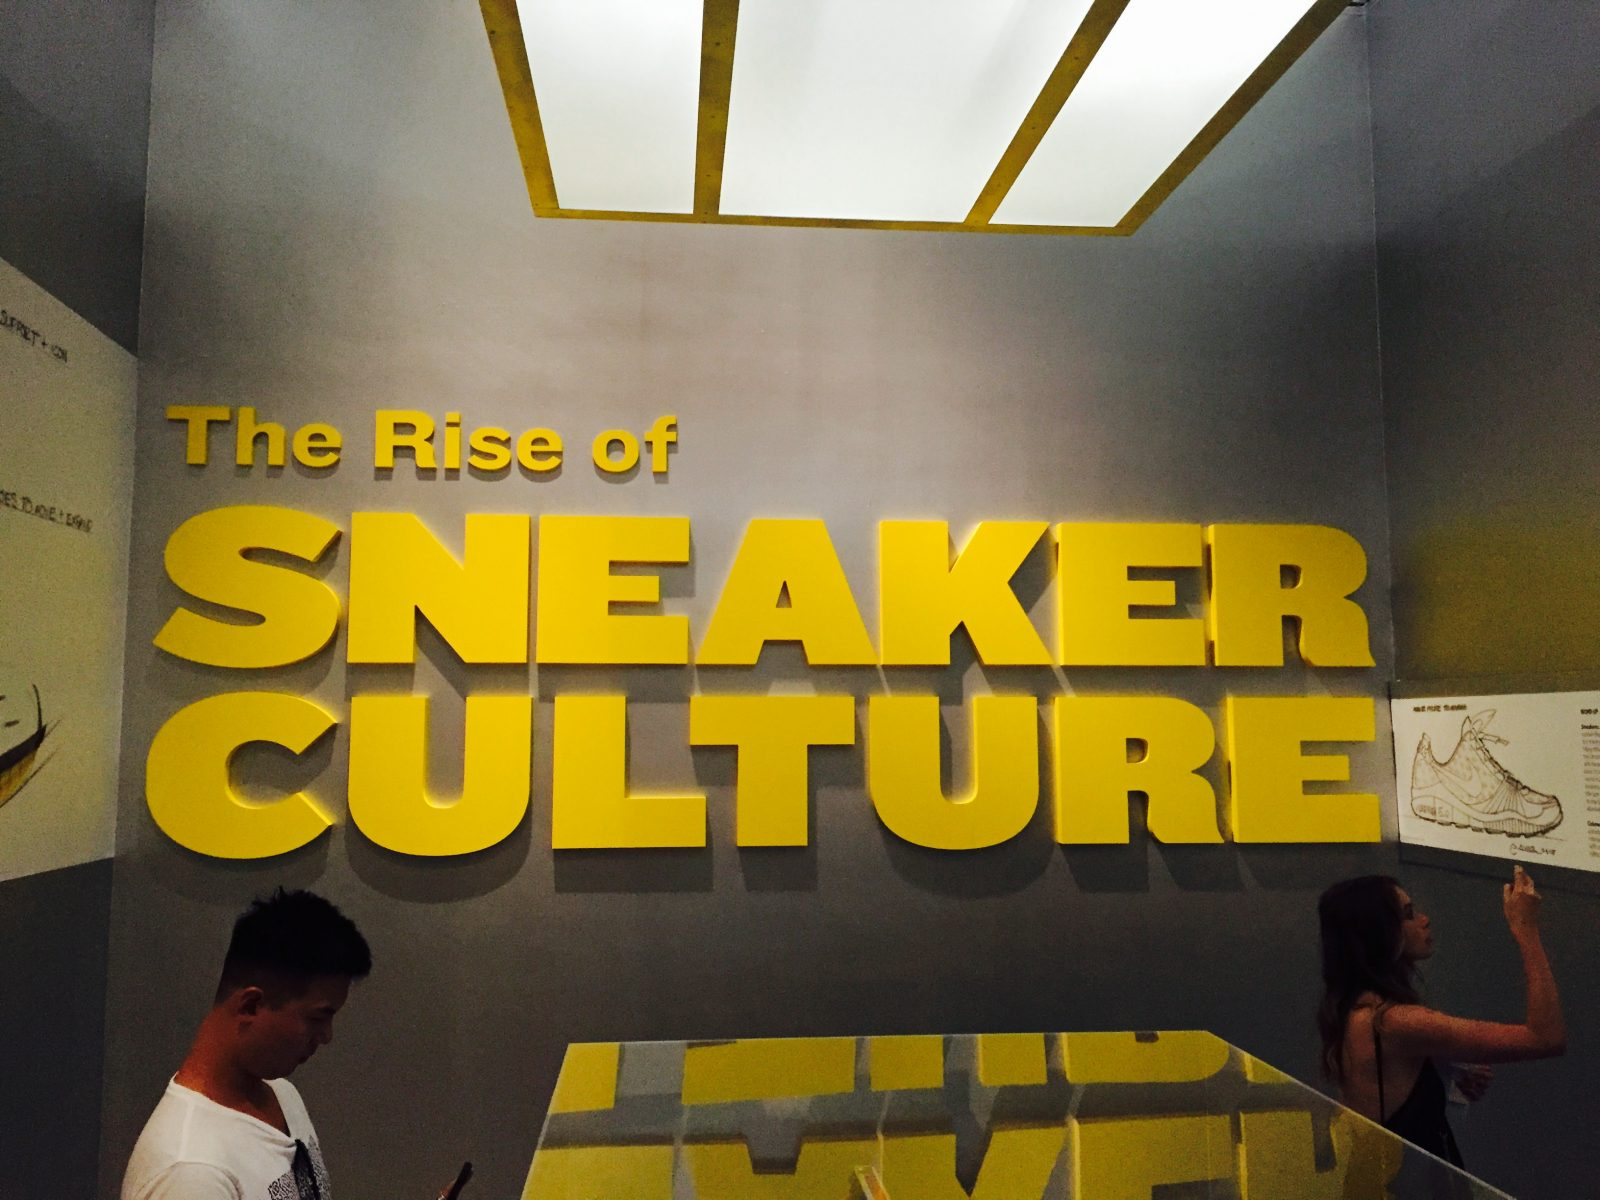 Brooklyn Museum - The Rise of Sneaker Culture